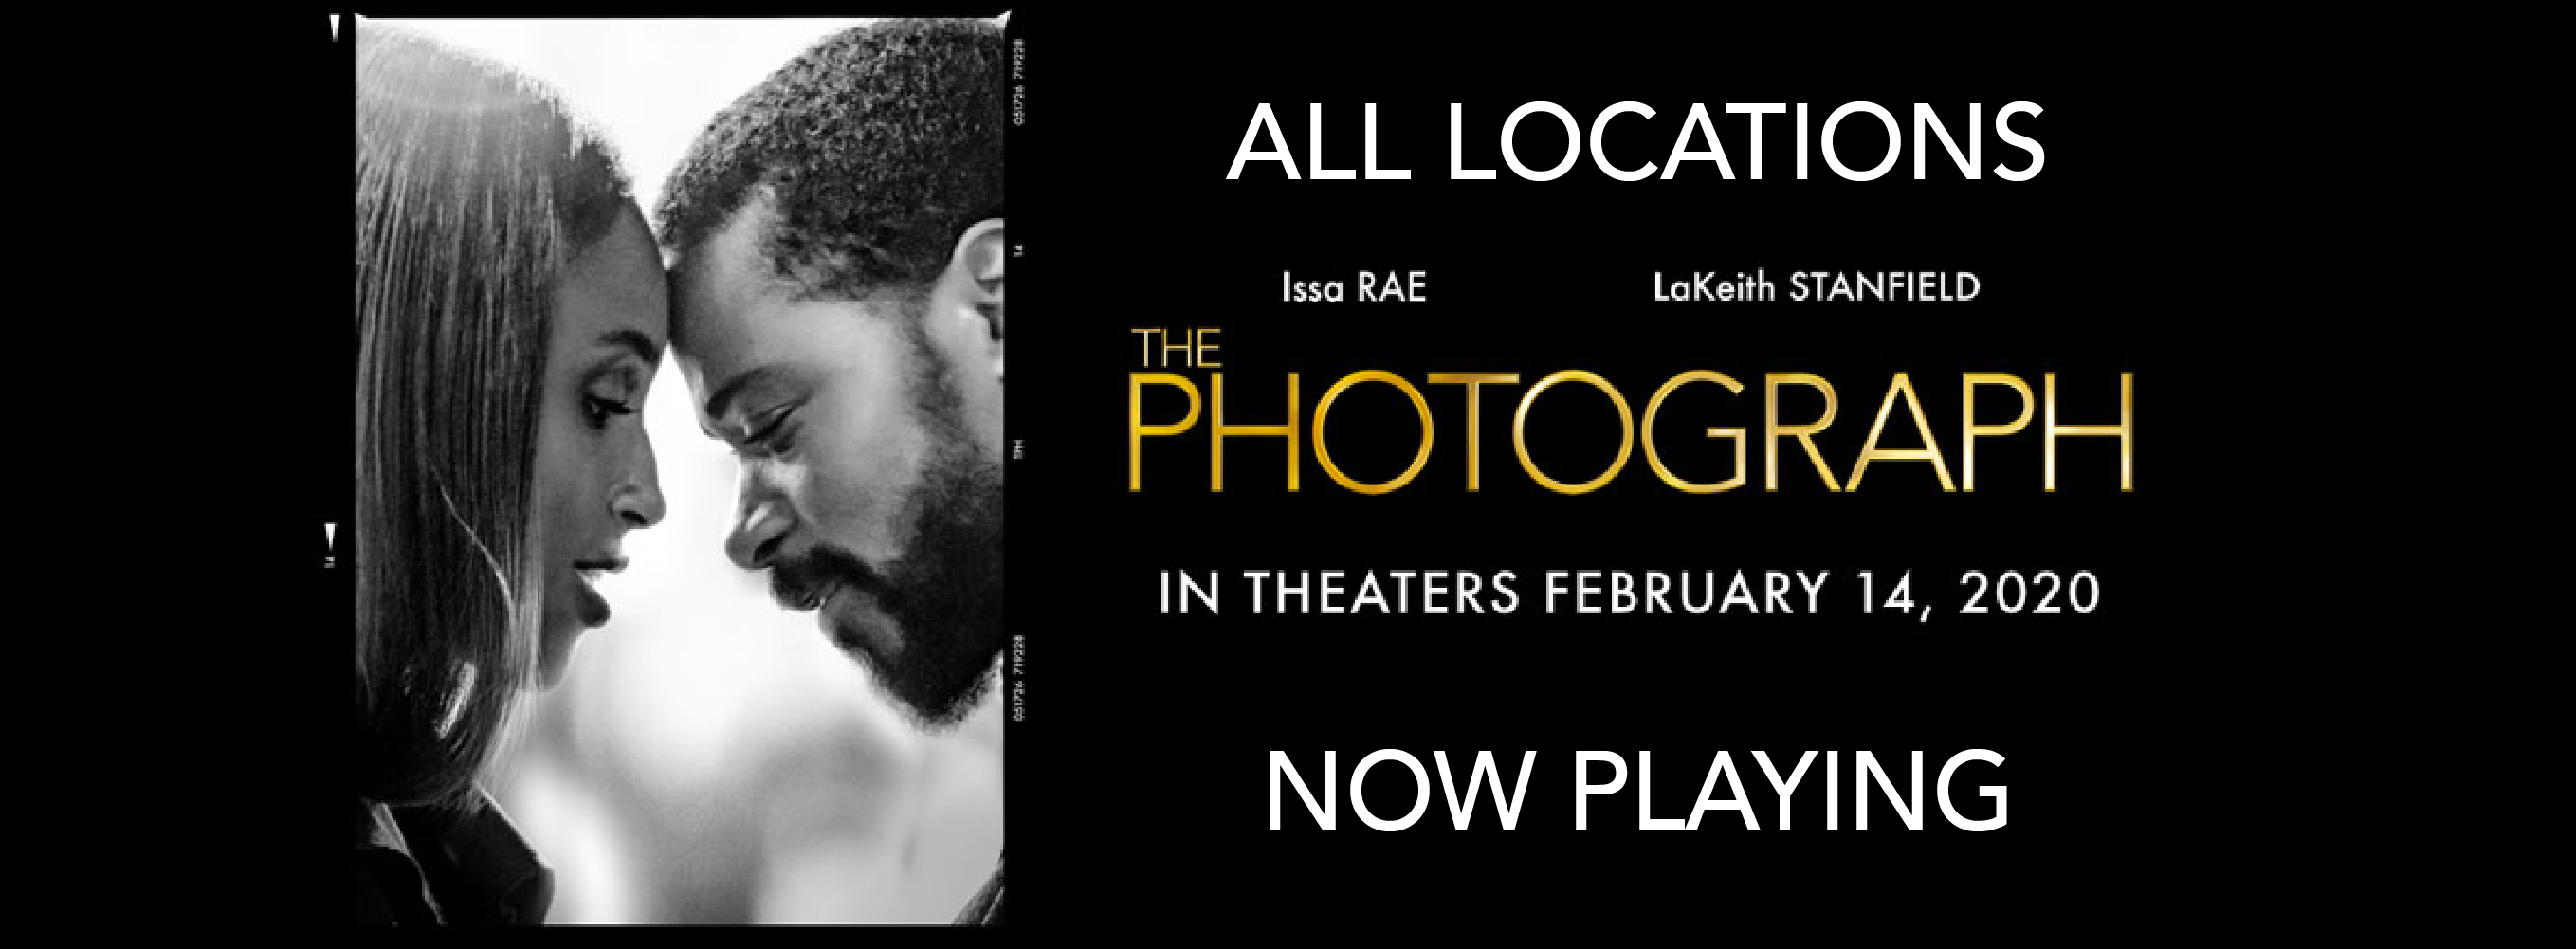 The Photograph Now Playing At All Locations